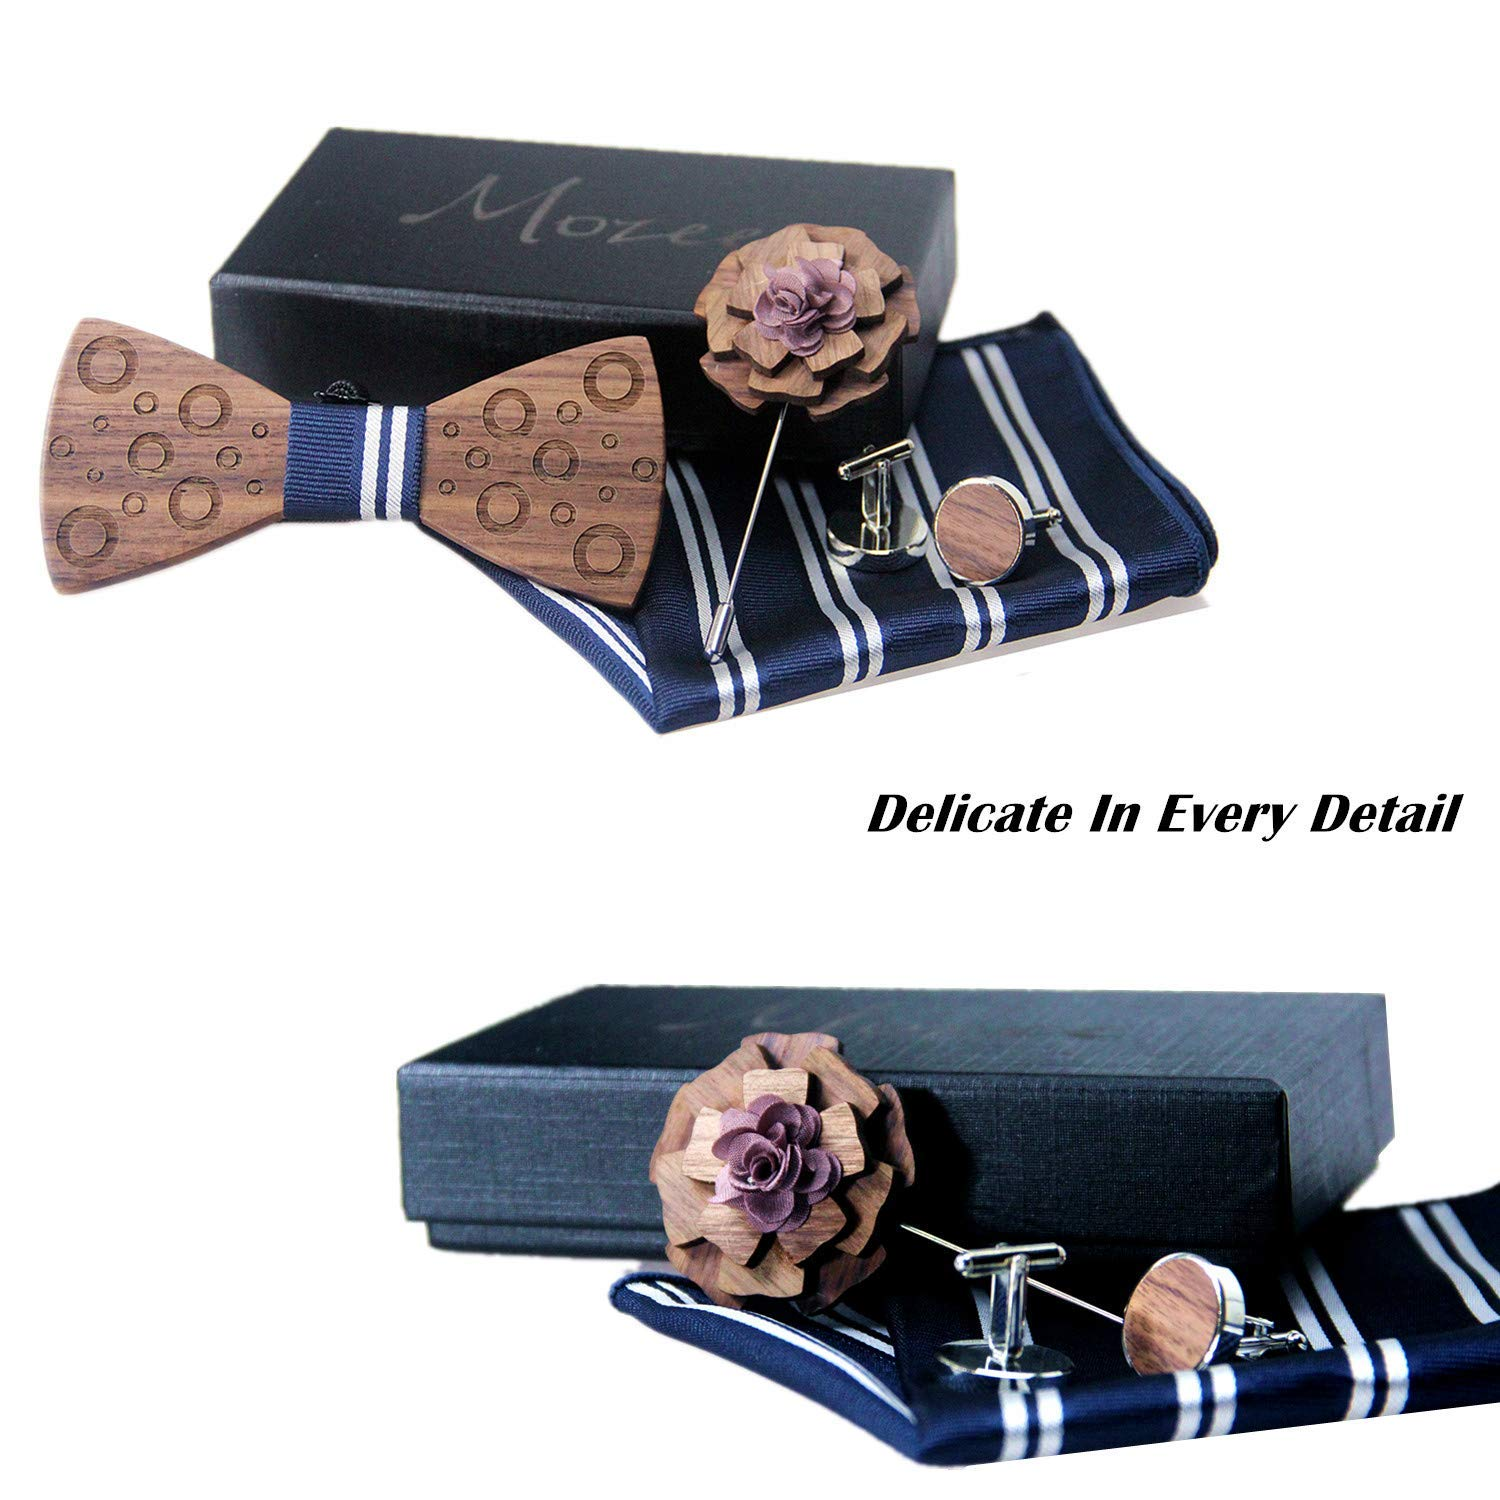 Premium Quality Walnut Wood Bow-tie With Brooch and Cuff-links Wooden Bow Tie Gift Box